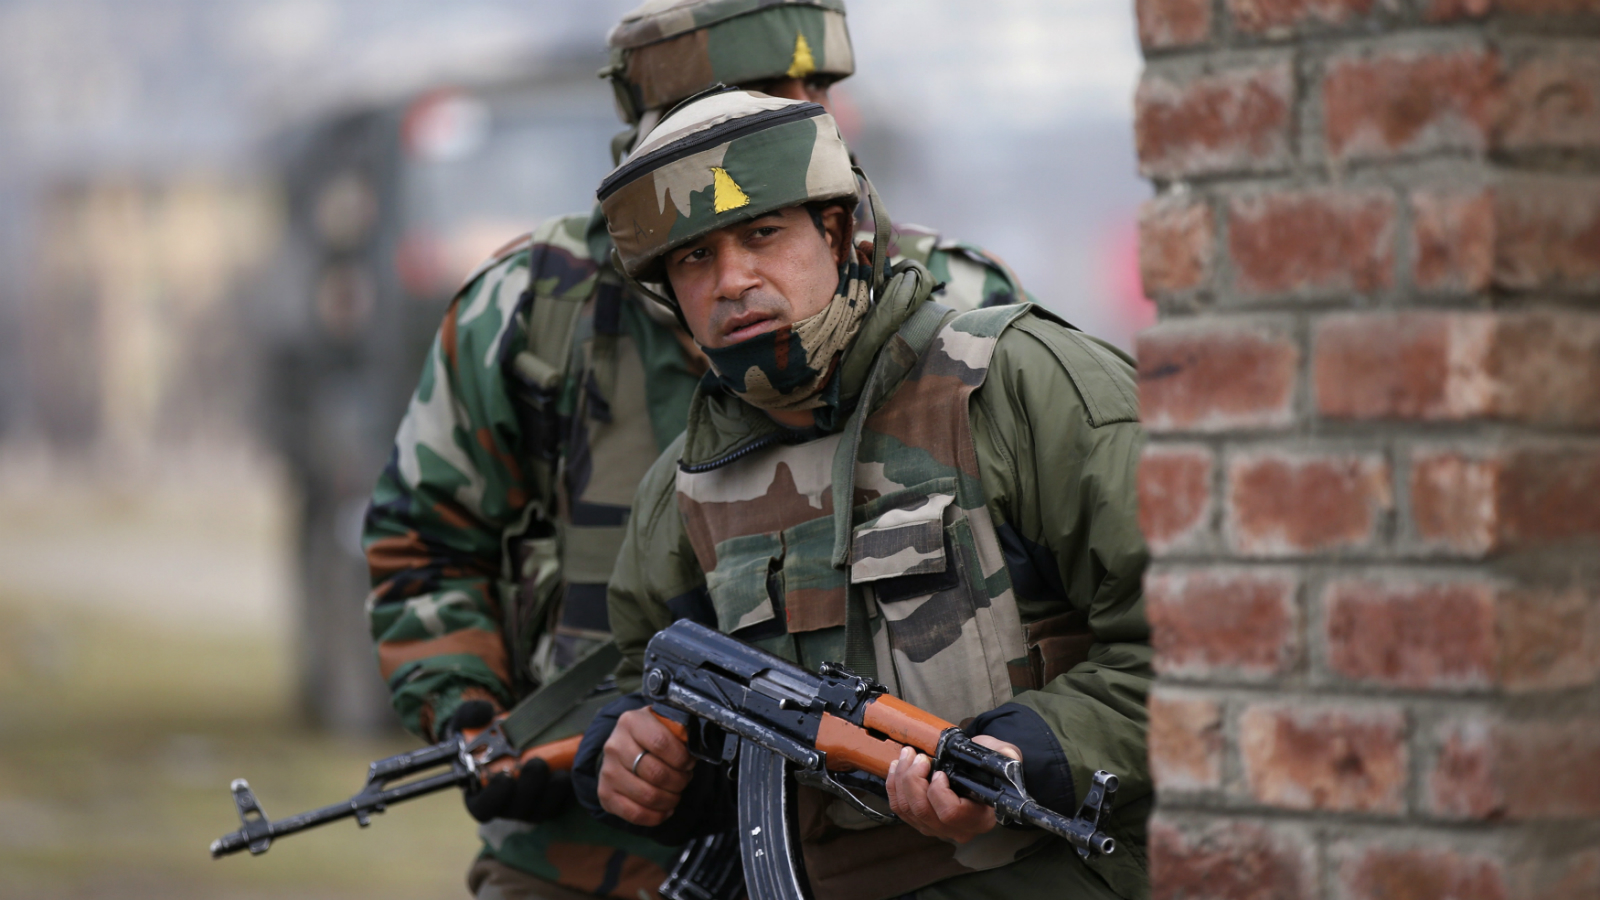 ndian army soldiers take their positions near the site of a gunbattle on the outskirts of Srinagar February 22, 2016.